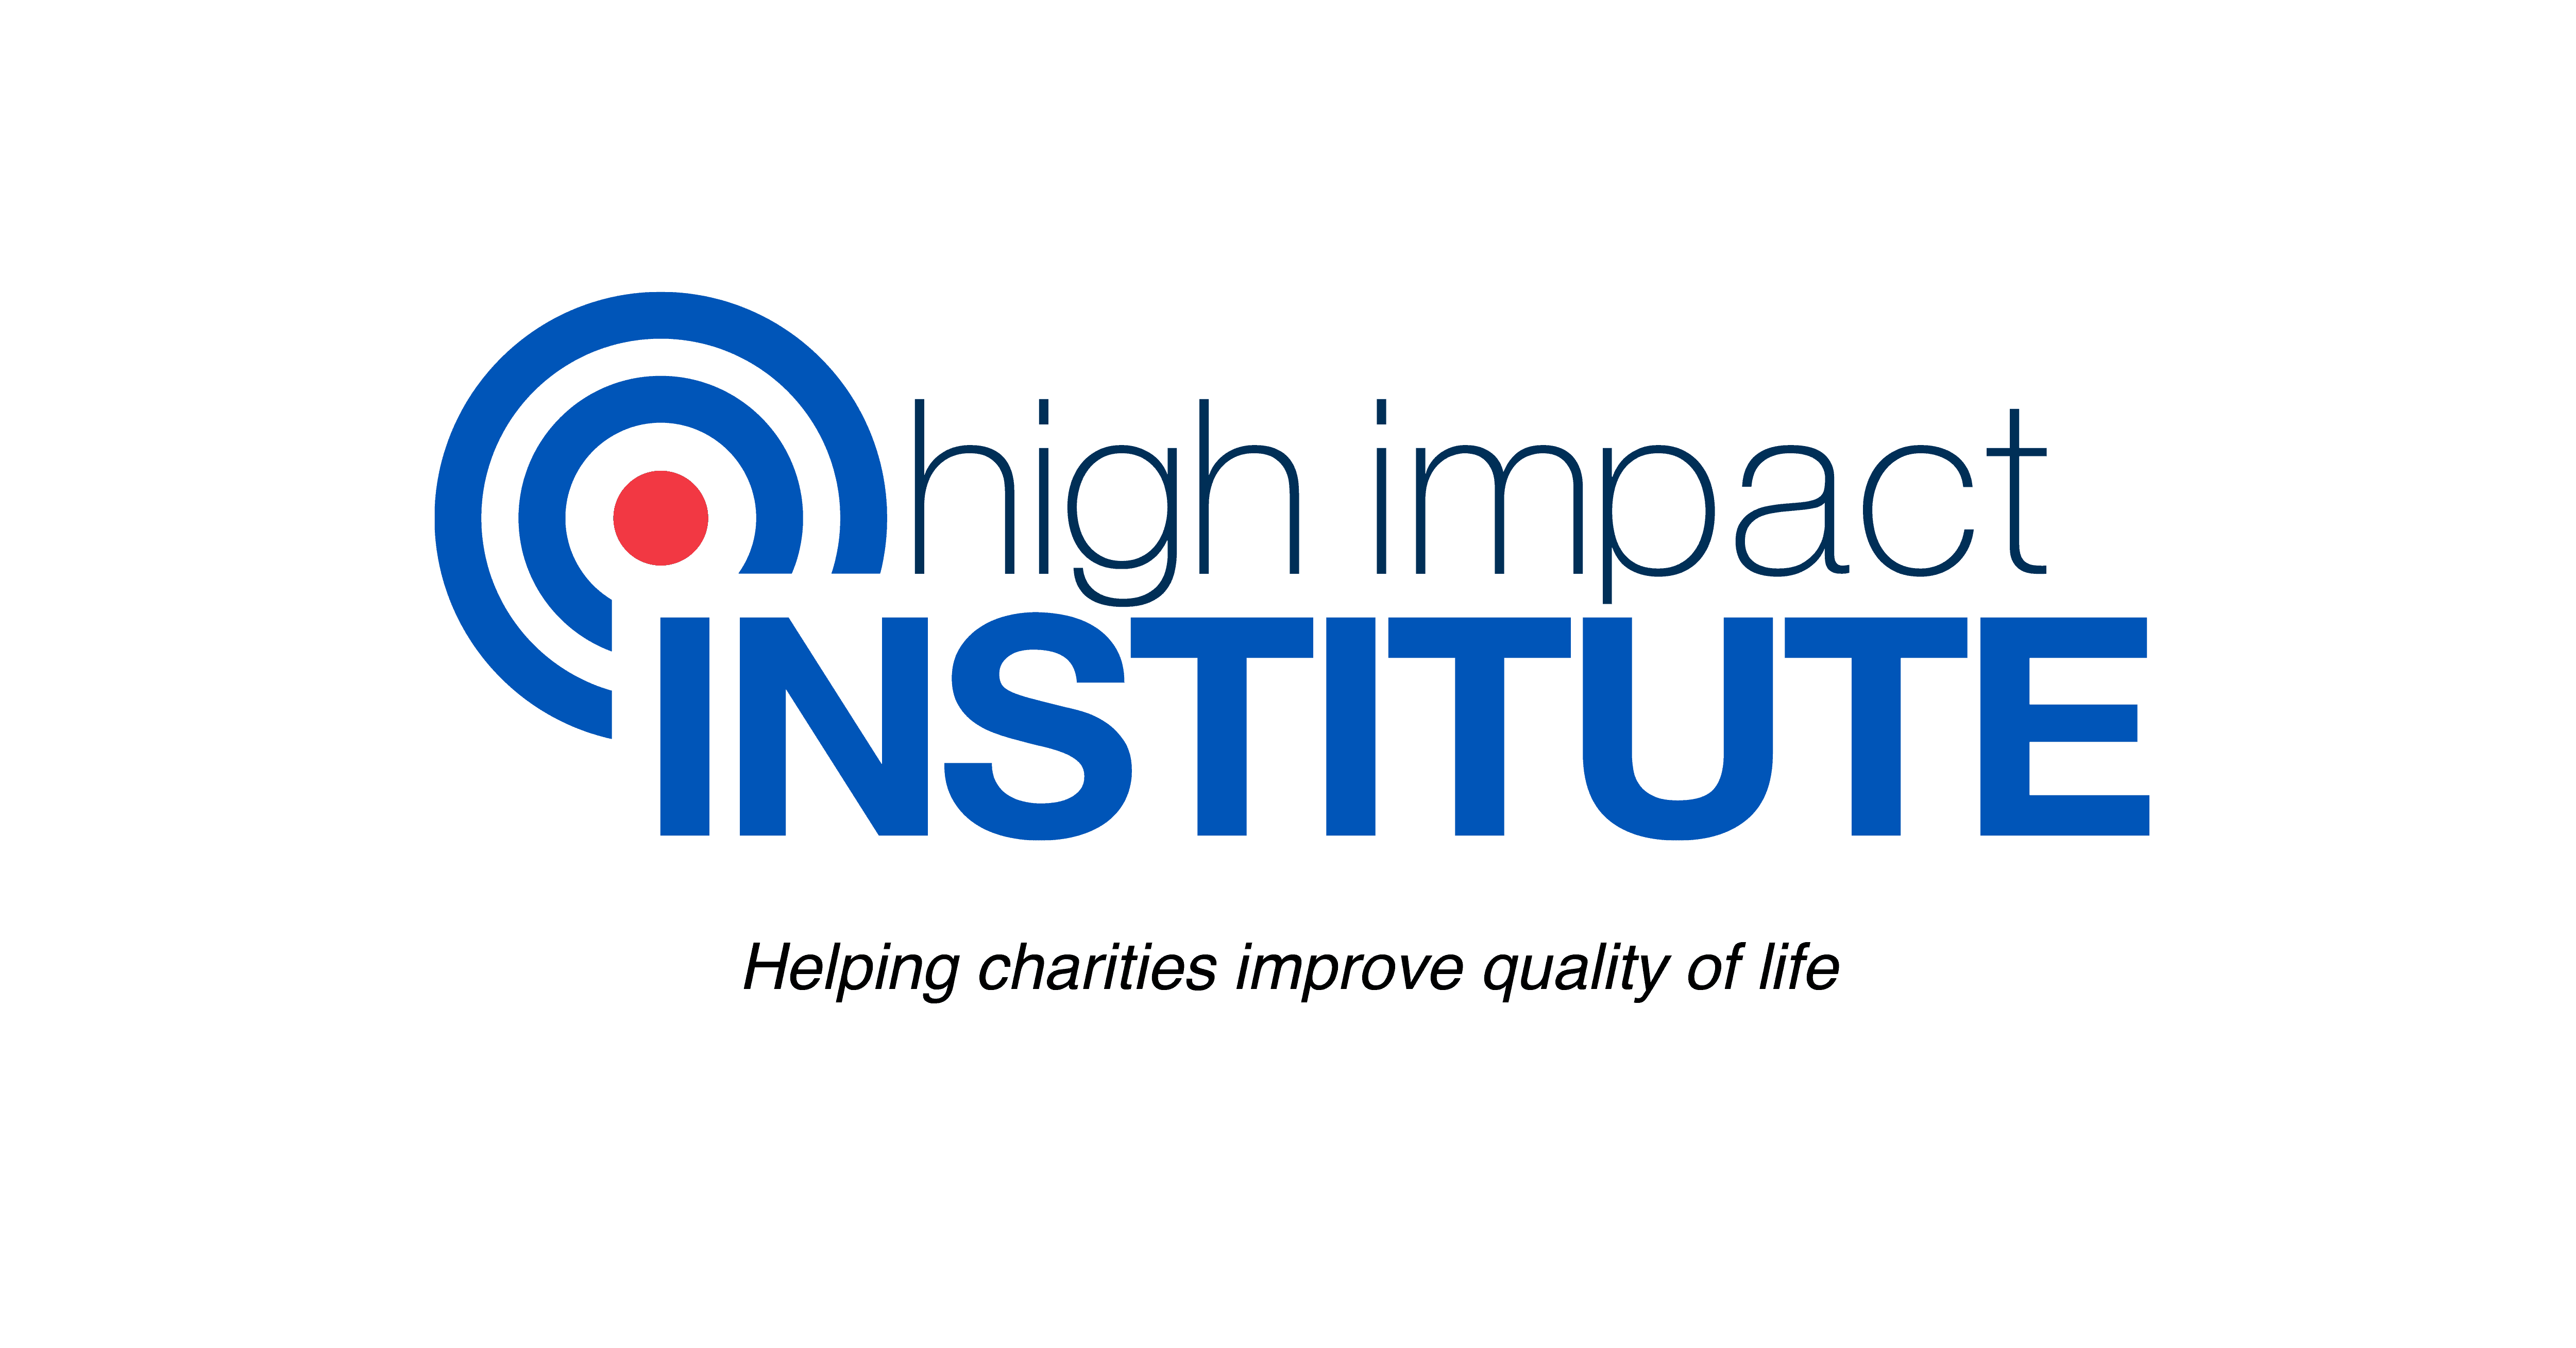 High Impact Institute - Helping charities improve quality of life